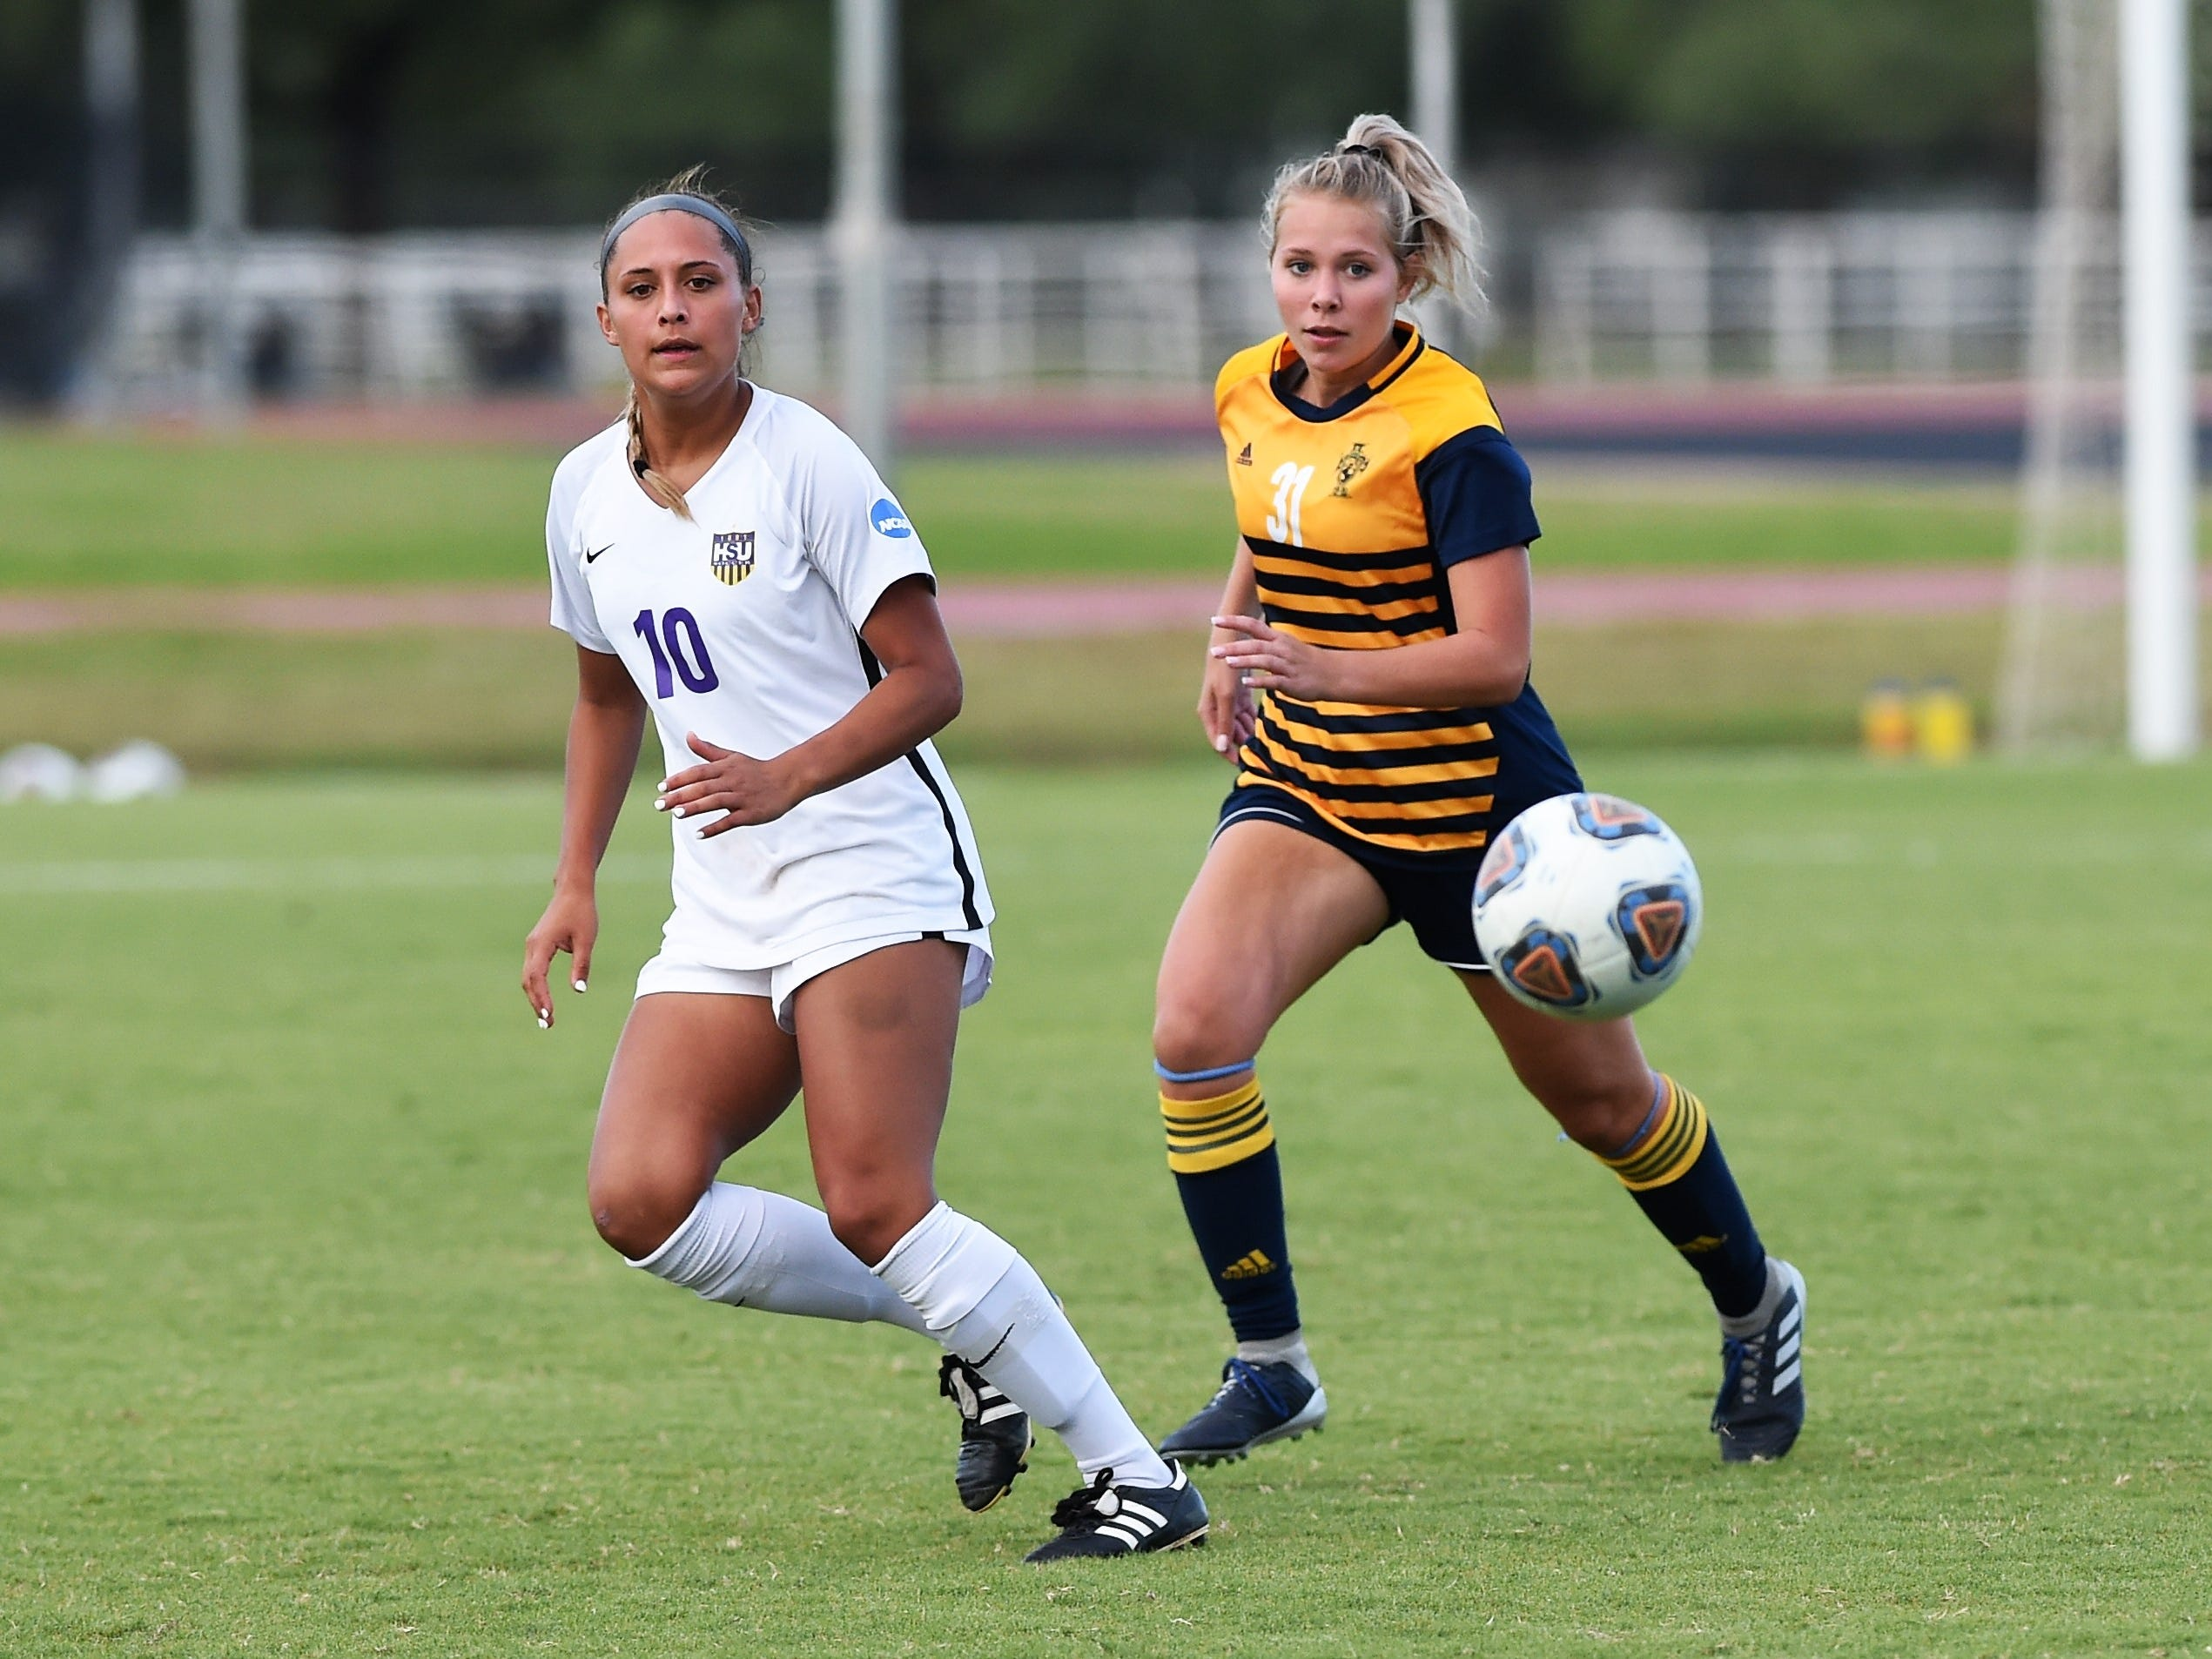 Hardin-Simmons forward Randie Dennison (10) turns to receive a pass in front of Howard Payne's Kate Van Wyk (31) at the HSU Soccer Complex on Thursday, Oct. 11, 2018. The Cowgirls won 4-1.